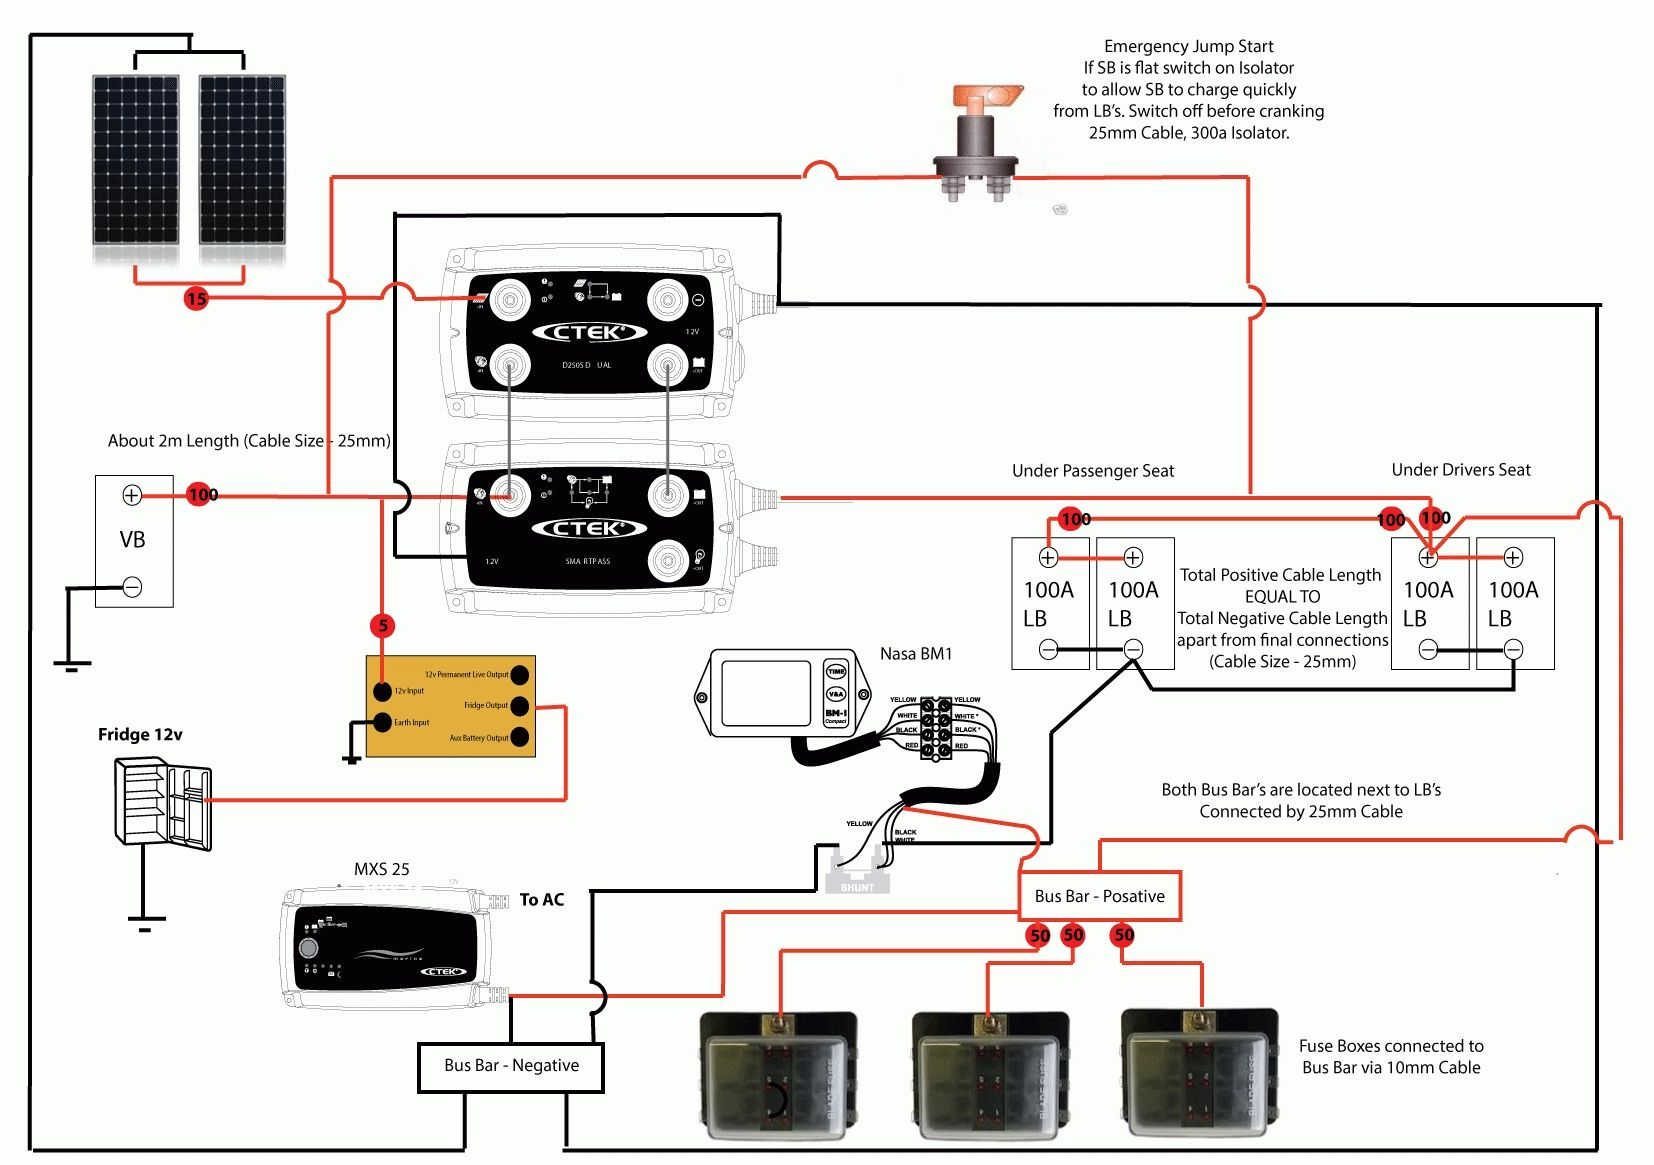 Nasa Battery Monitor Wiring Diagram | WiringDiagram.org 100 Series  Landcruiser, Camper Conversion,